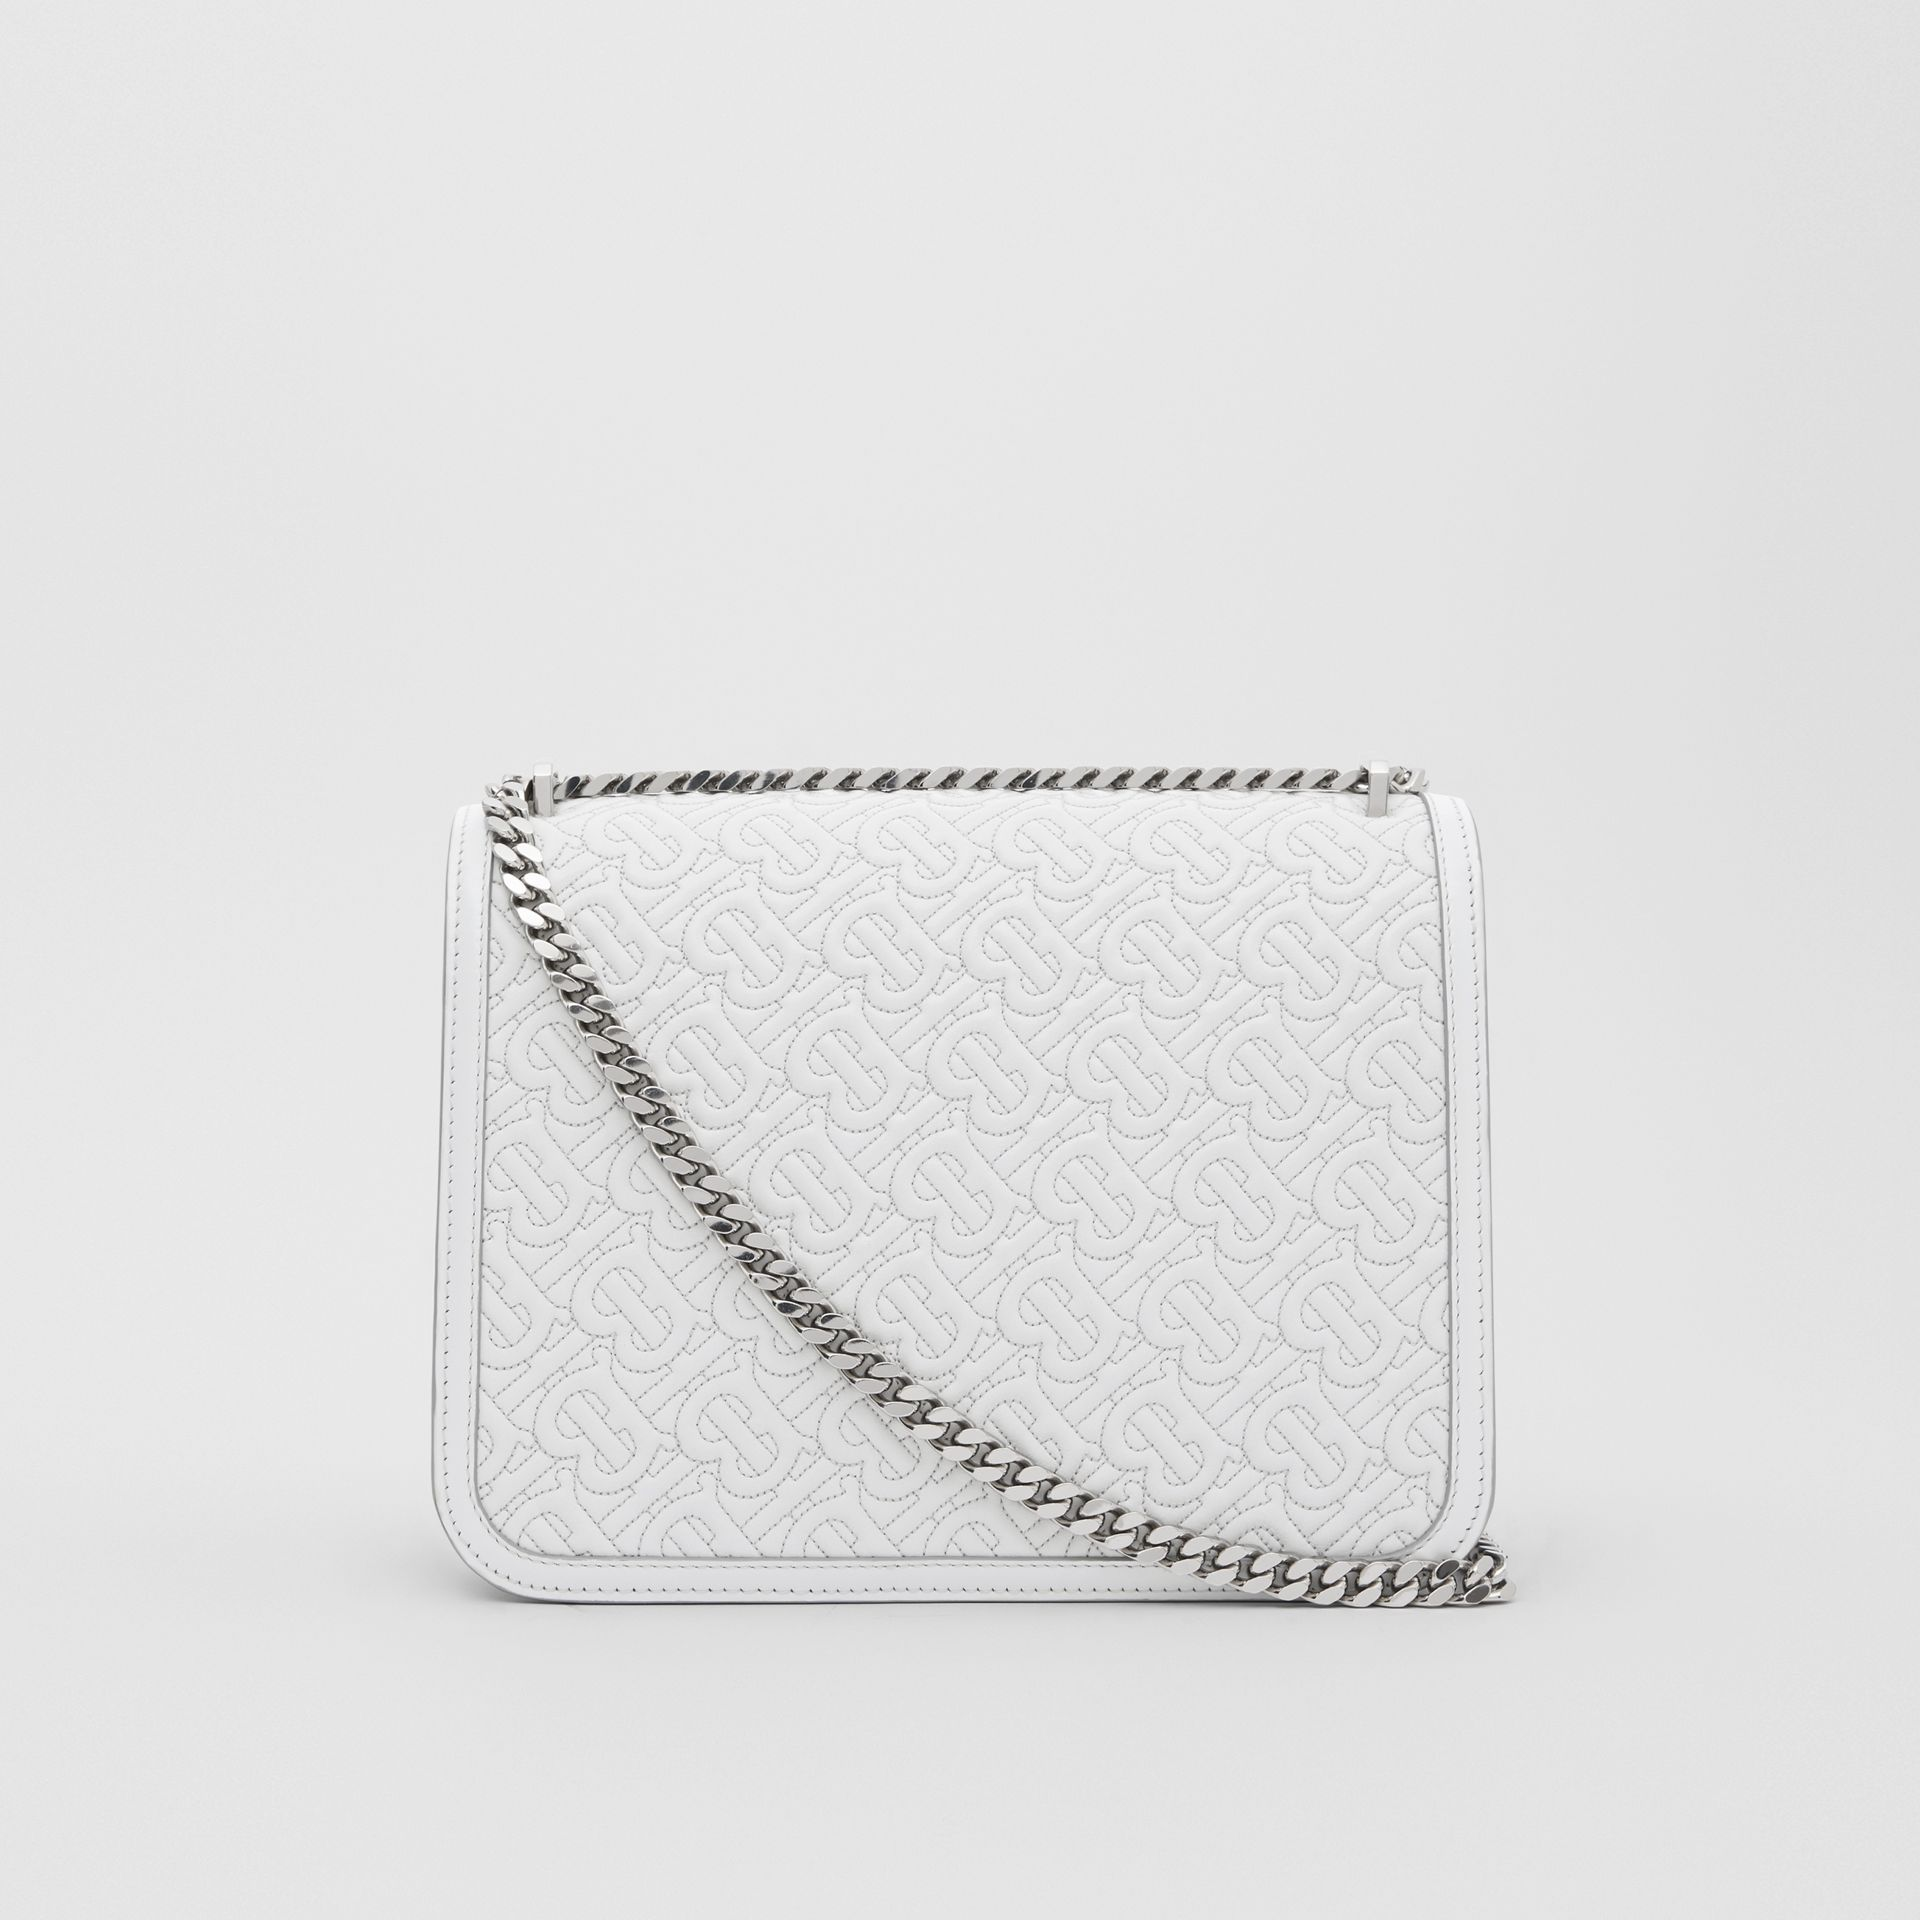 Medium Quilted Monogram Lambskin TB Bag in Light Pebble Grey - Women | Burberry Australia - gallery image 7